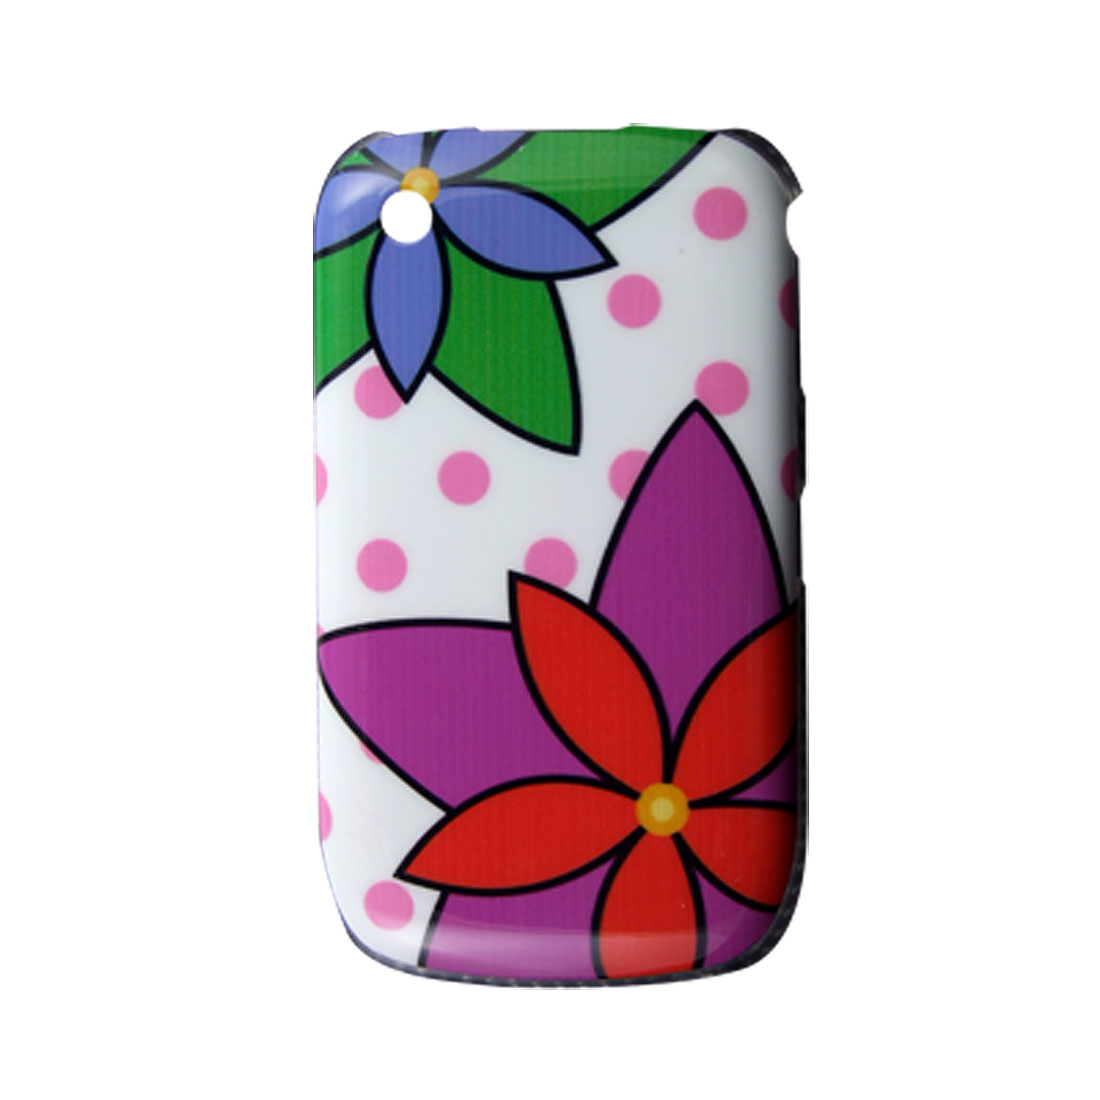 Multicolor Hard Case Flower Cover for BlackBerry 8520